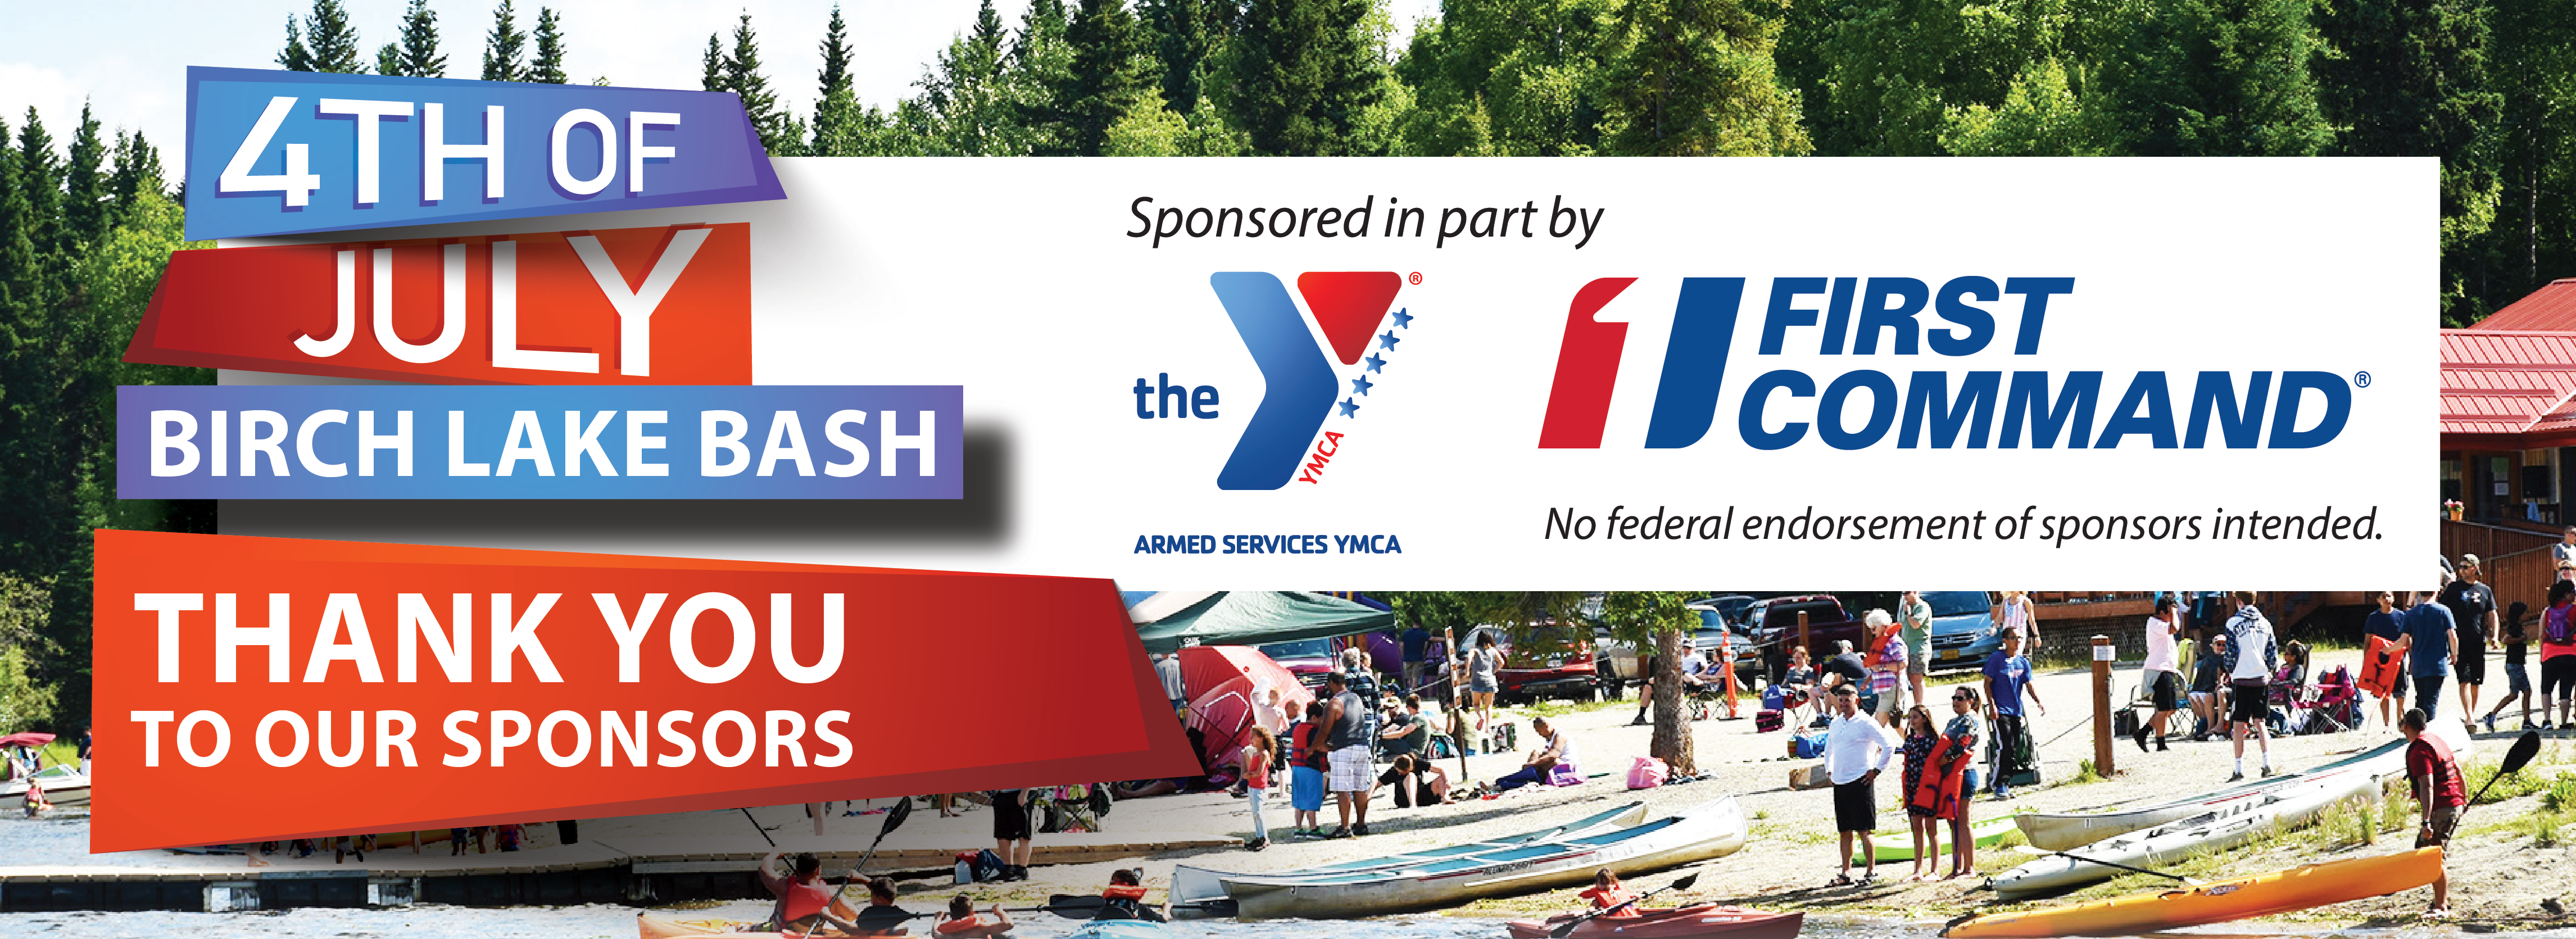 4 JUL 2019 ODR BIRCH LAKE BASH THANK YOU TO OUR SPONSORS 01